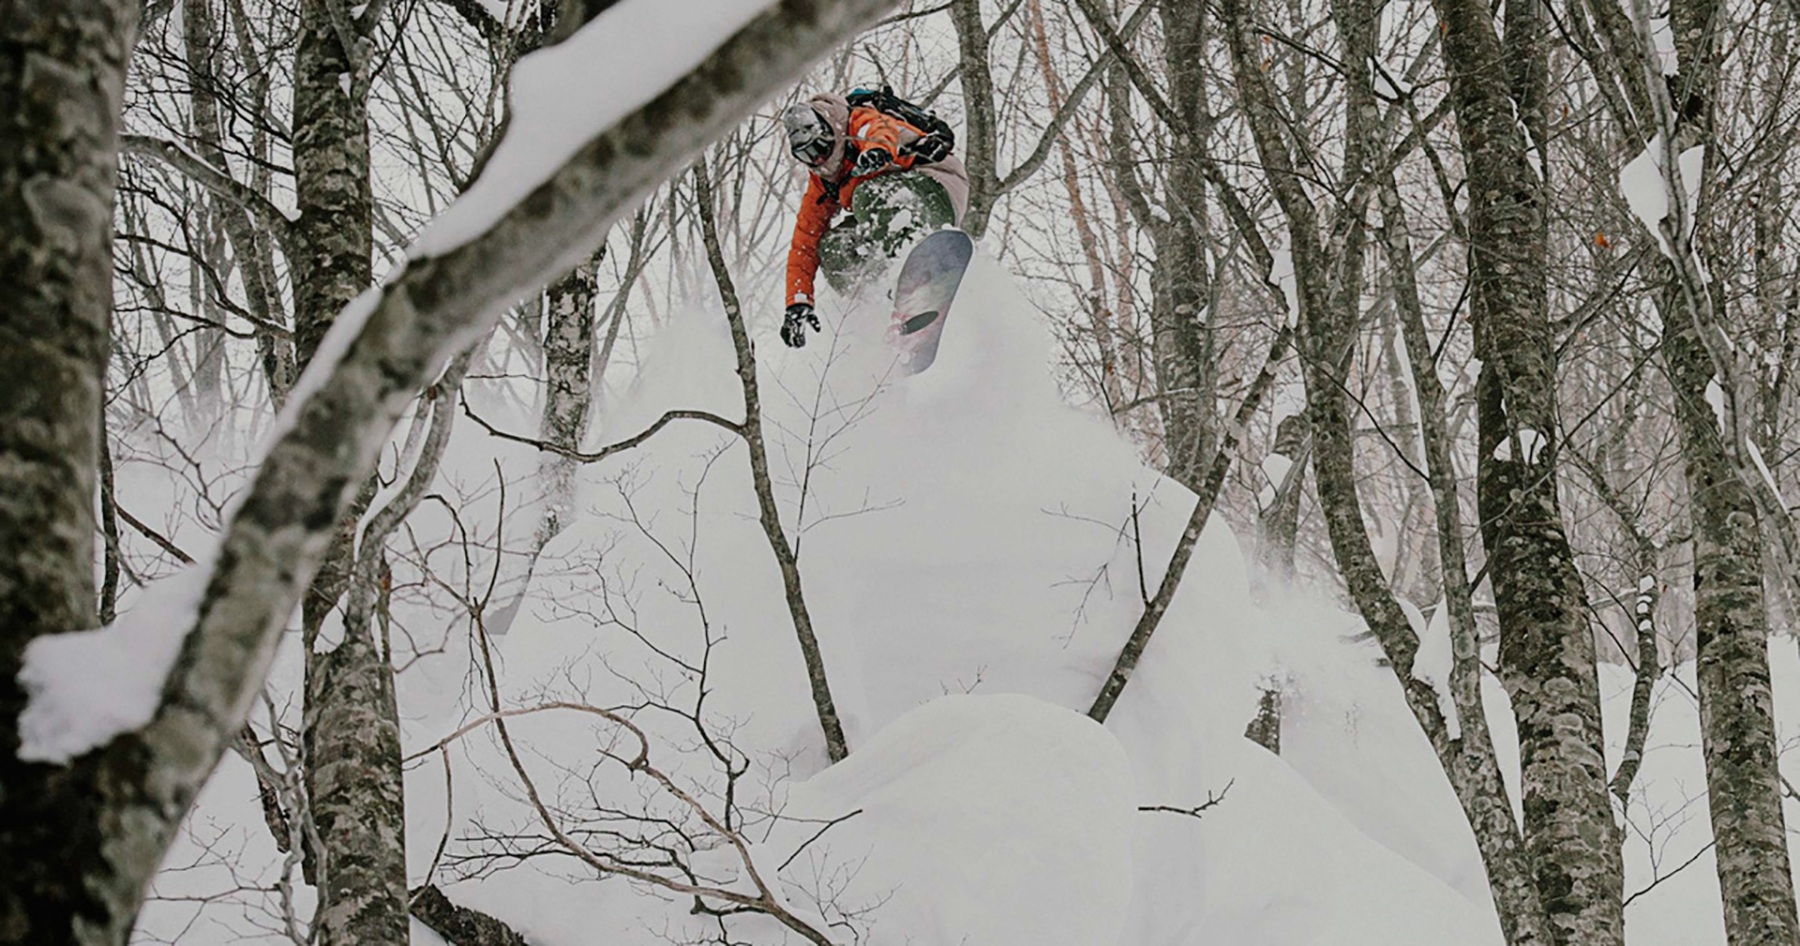 Insane Snowboarding Video. Oh yeah, Winter's Coming.